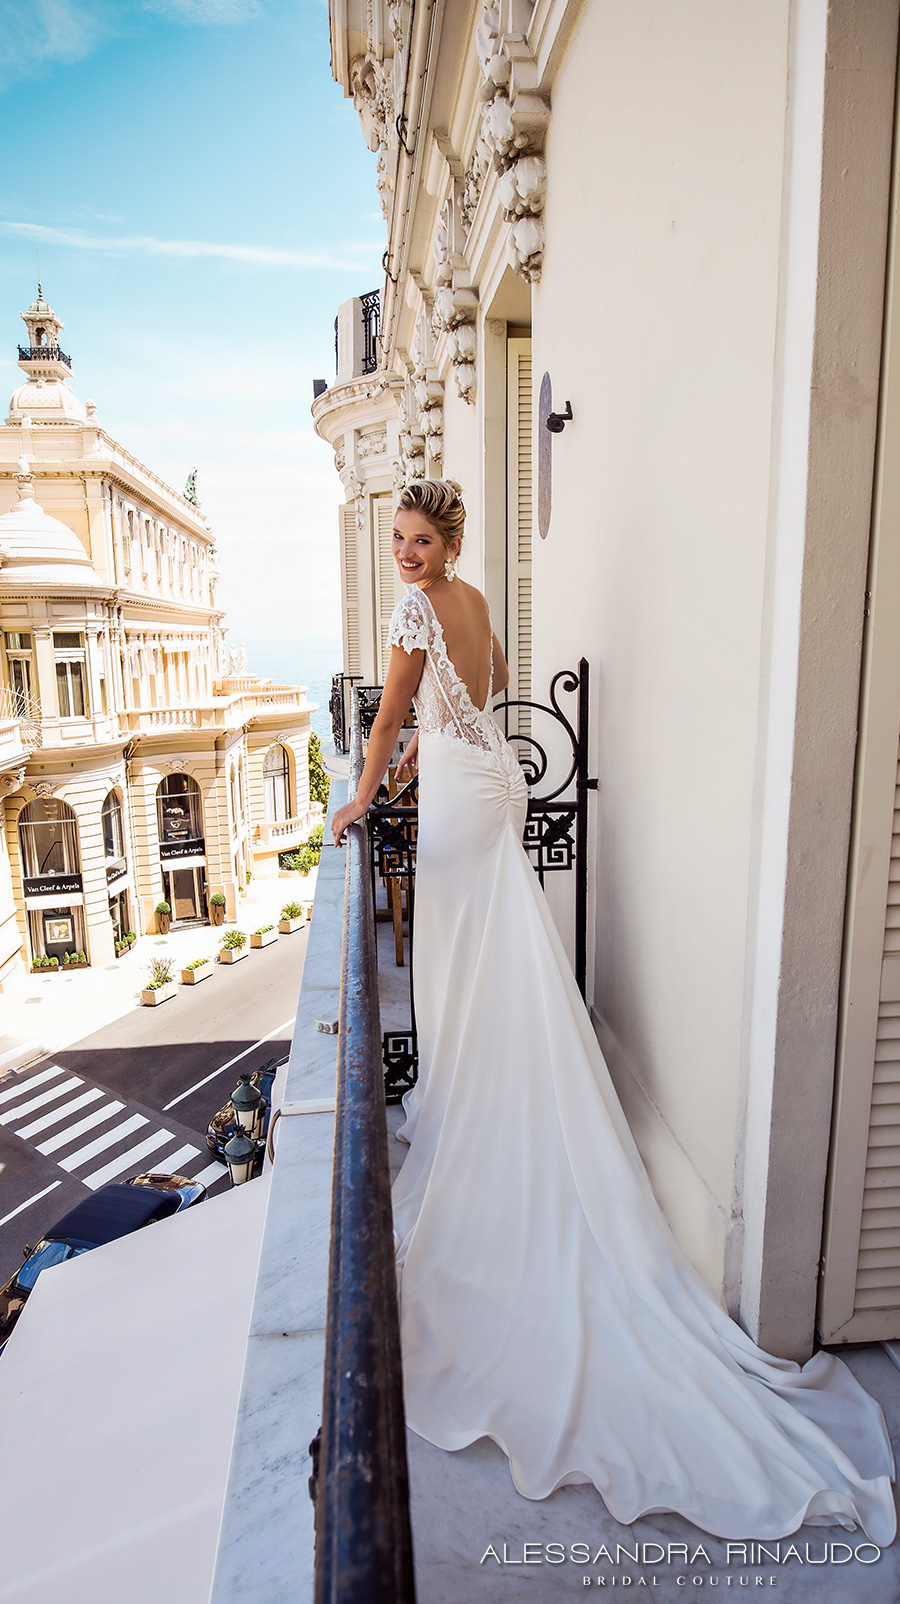 alessandra rinaudo 2017 bridal cap sleeves bateau neckline heavily embellished bodice elegant sheath wedding dress low back long train (bruna) bv